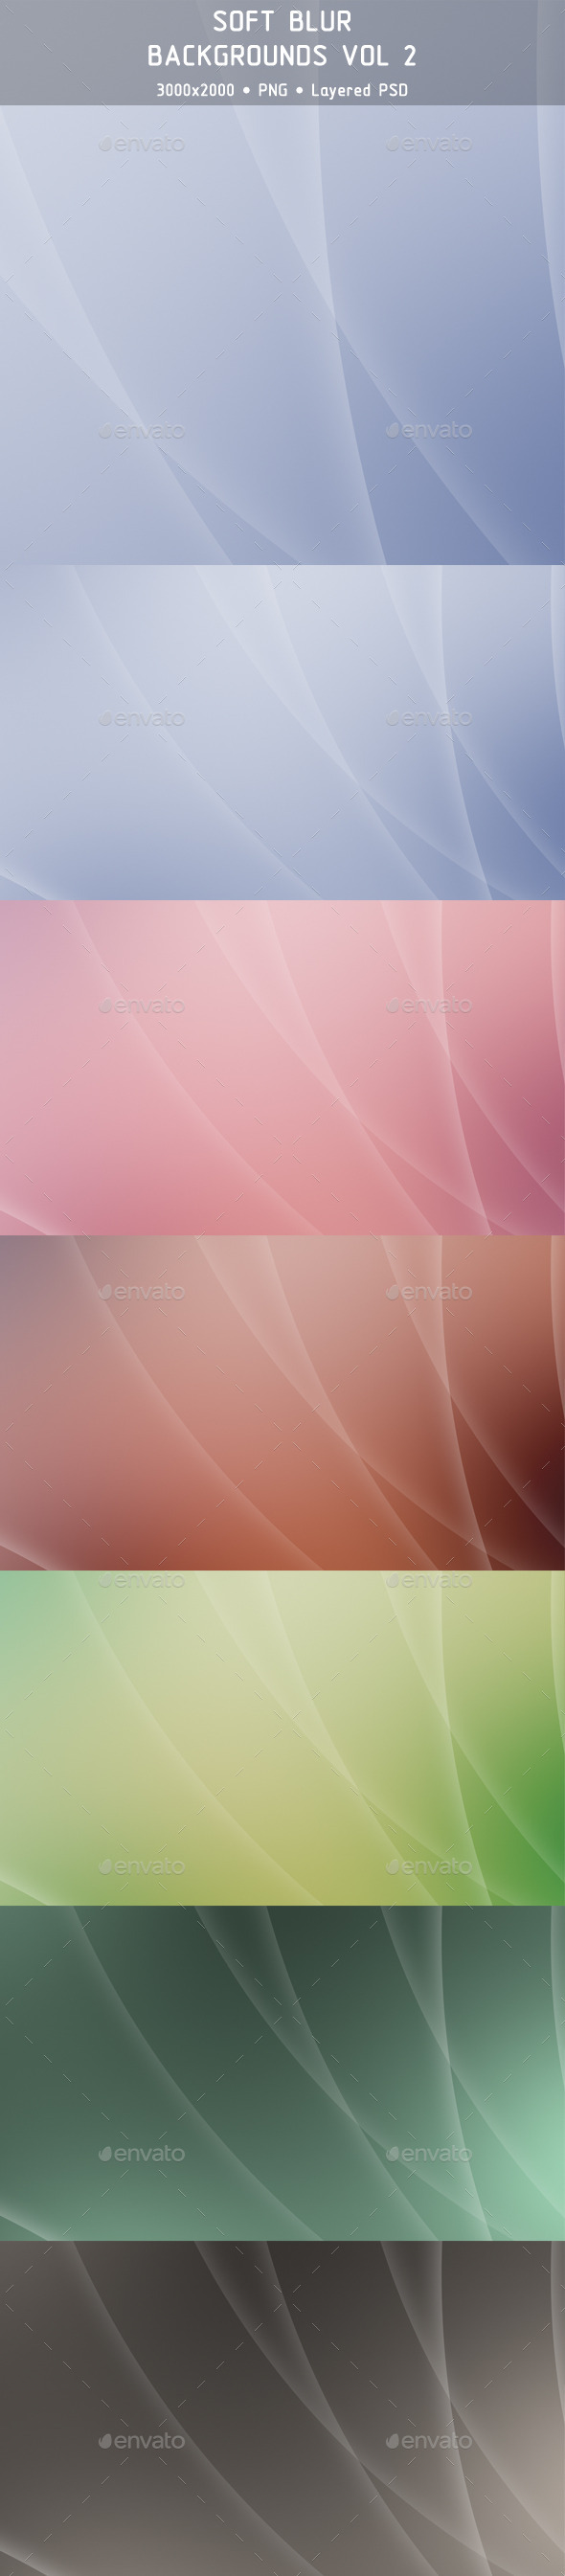 GraphicRiver Soft Blur Backgrounds Vol 2 9846694